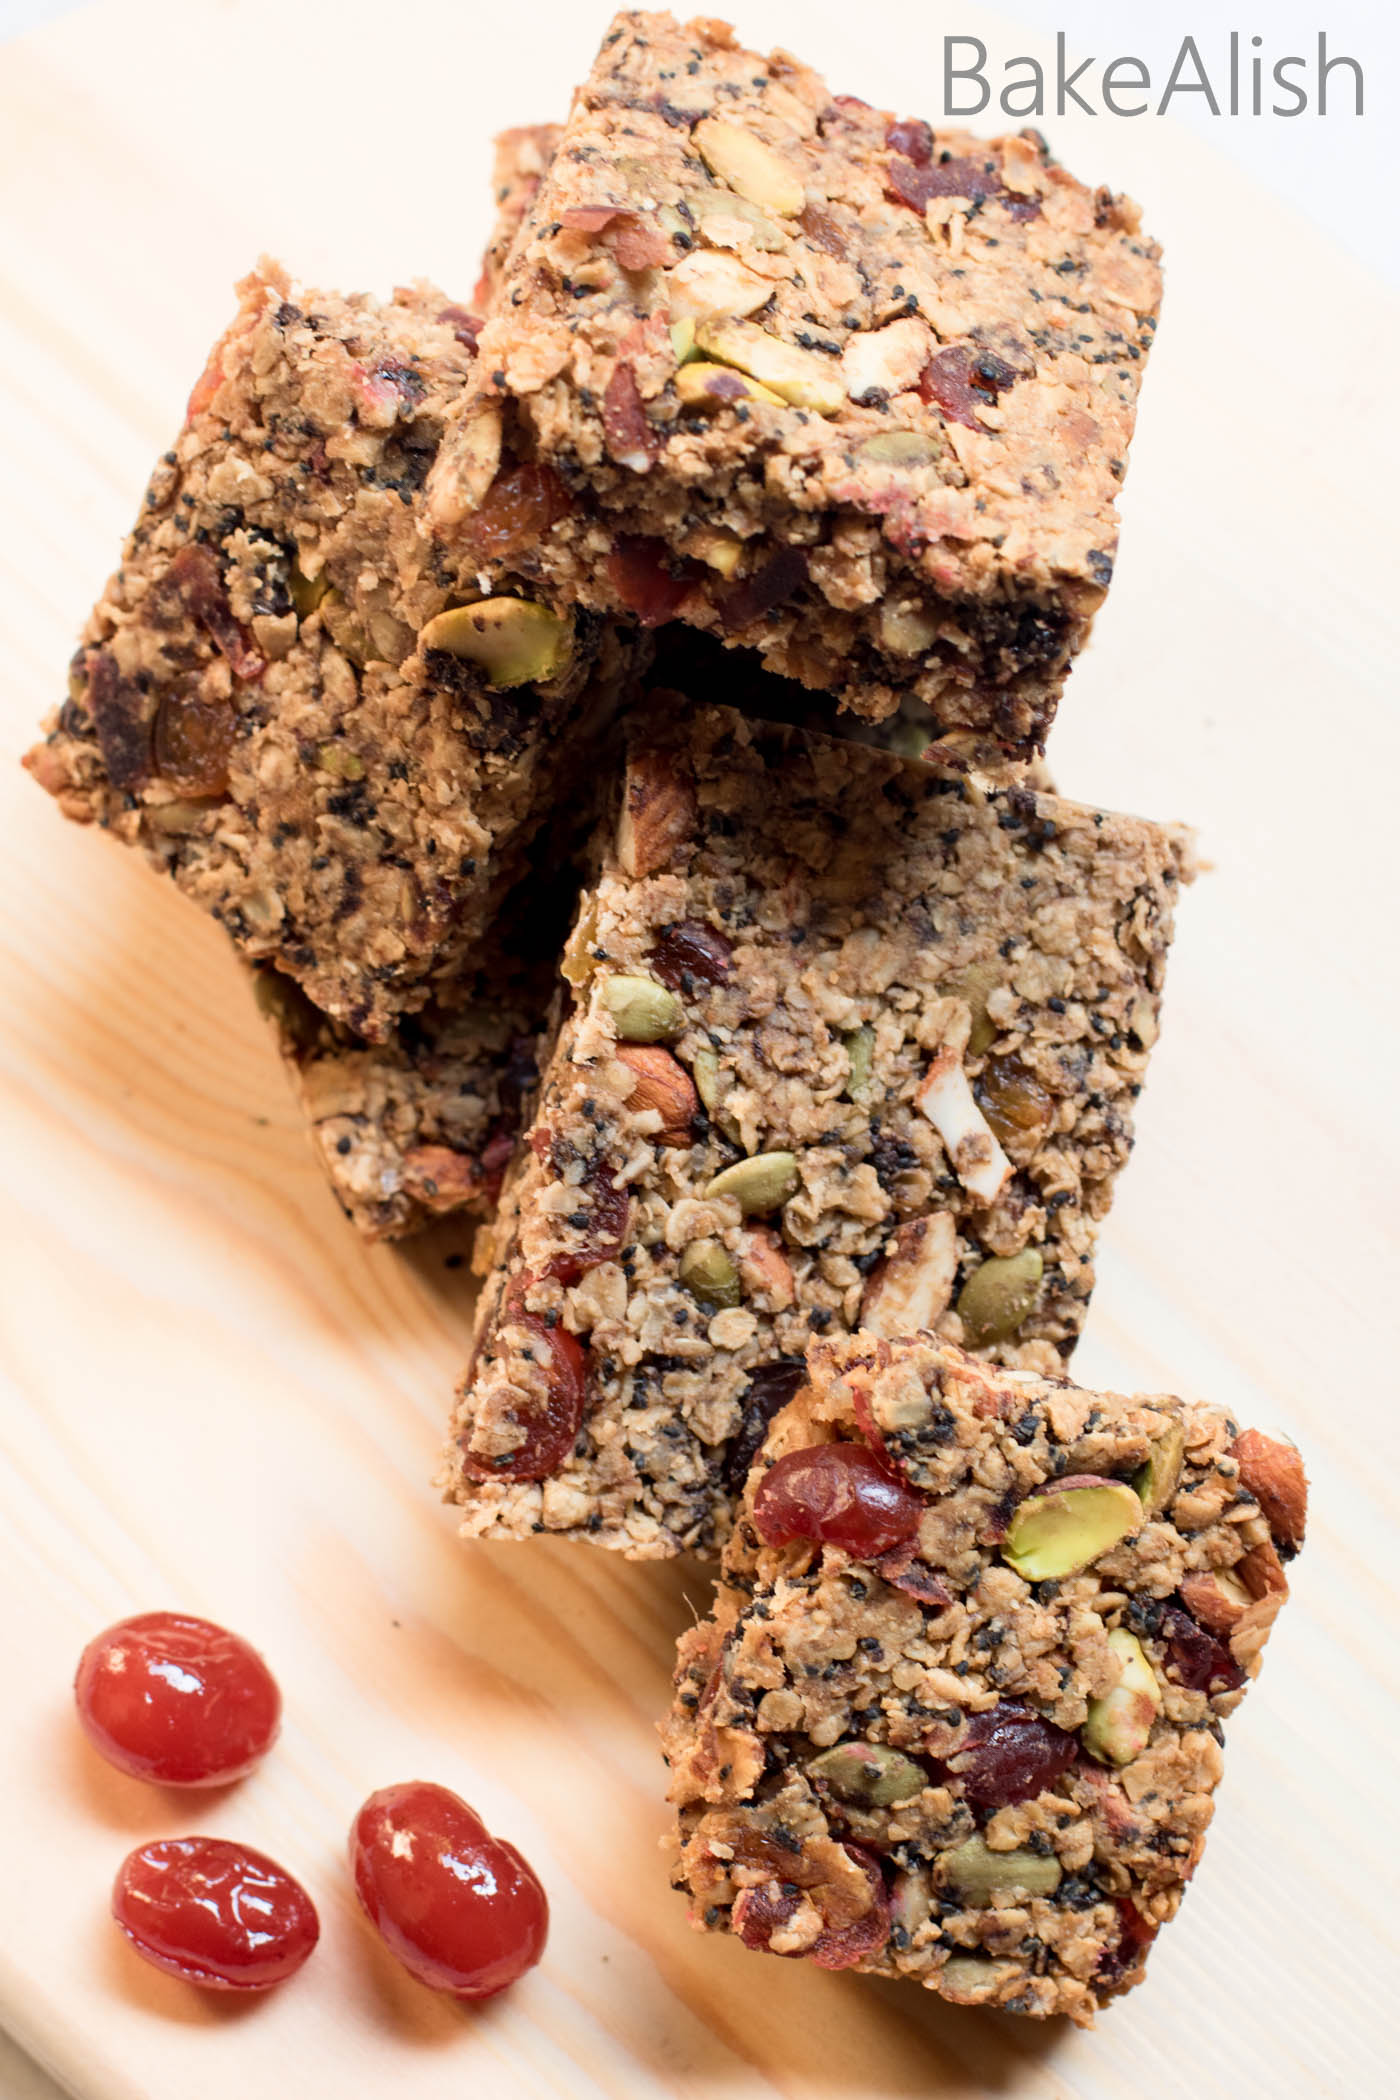 These Fruit And Nut Granola Bars have all the nuts you like and is loaded with dates, raisins and more. Its a very basic granola bar recipe, you can add whatever nuts and dried fruits you'd like in these healthy bars. These simply taste great and is a perfect munching option when you need a snack.